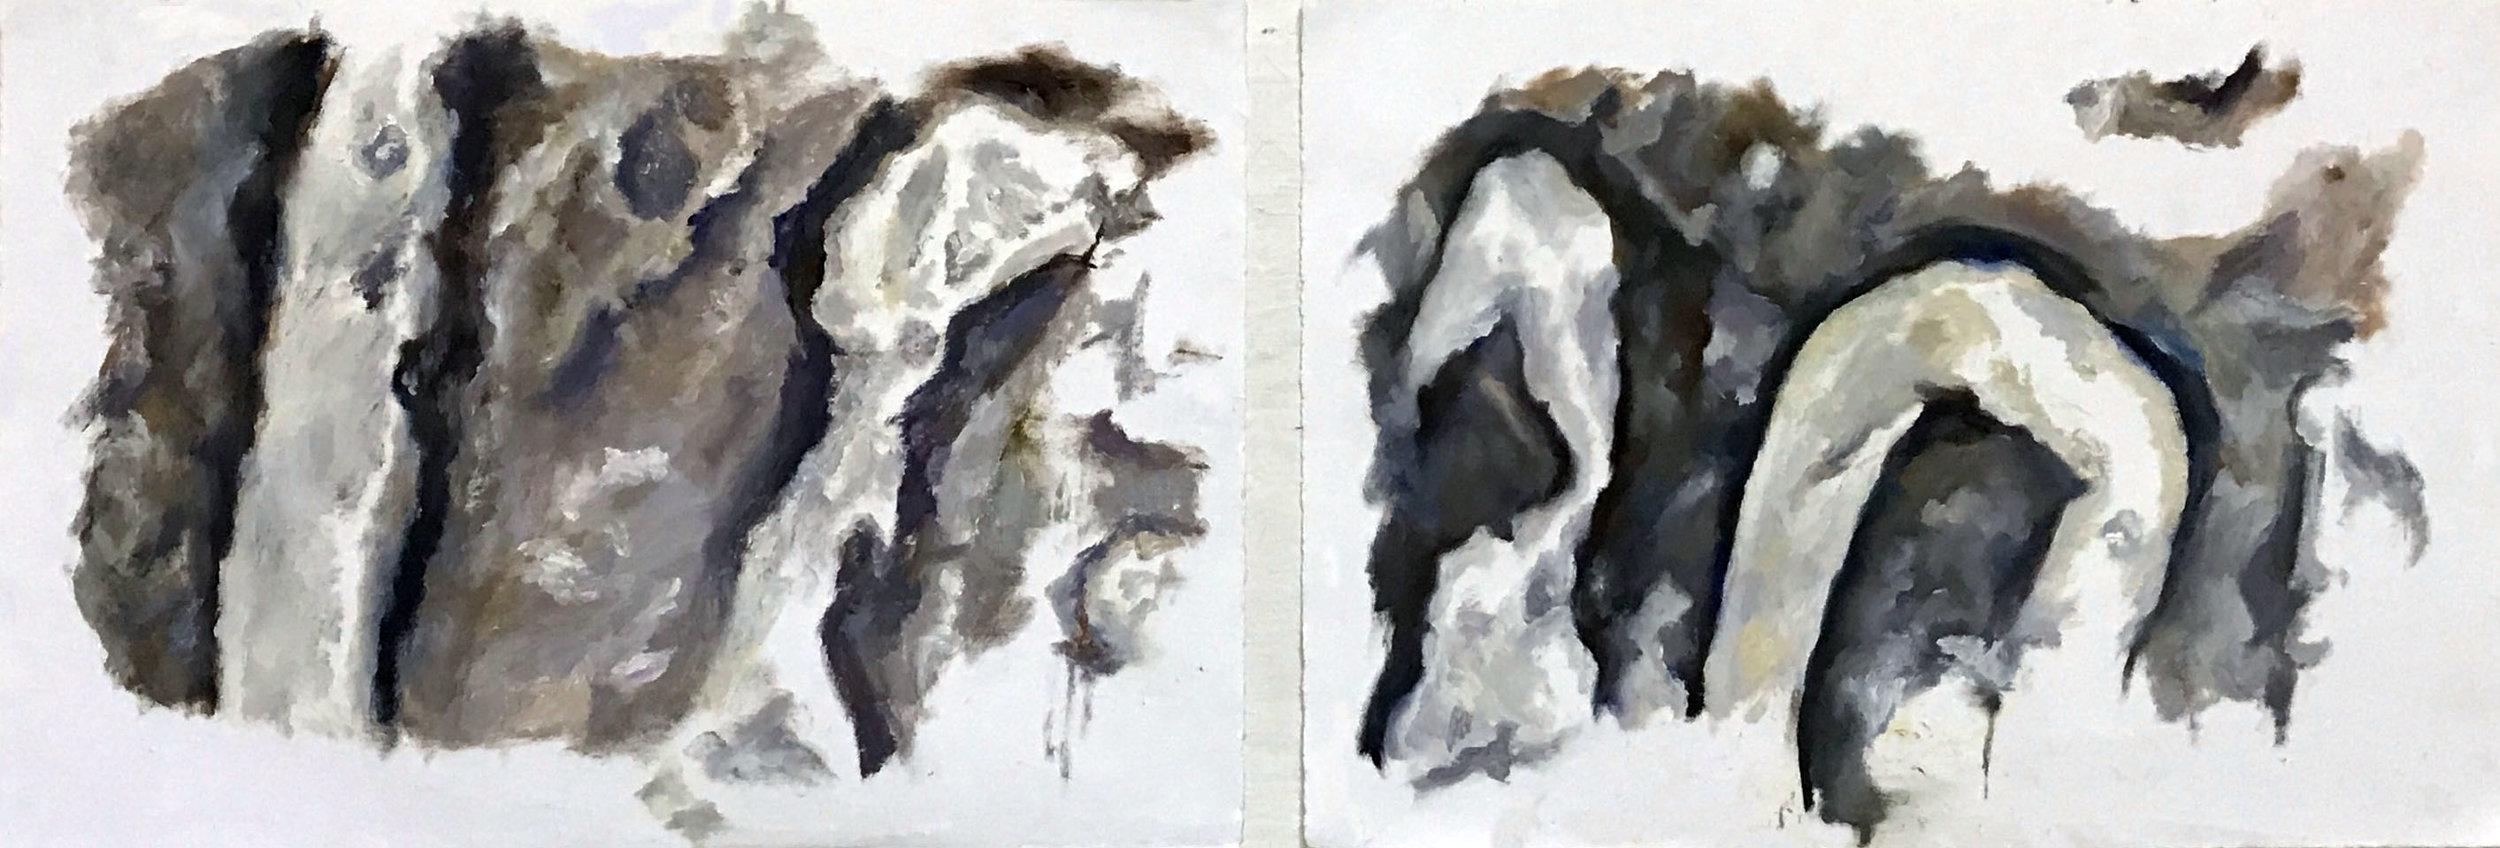 Oil on paper  11 x 17 inches each  2017